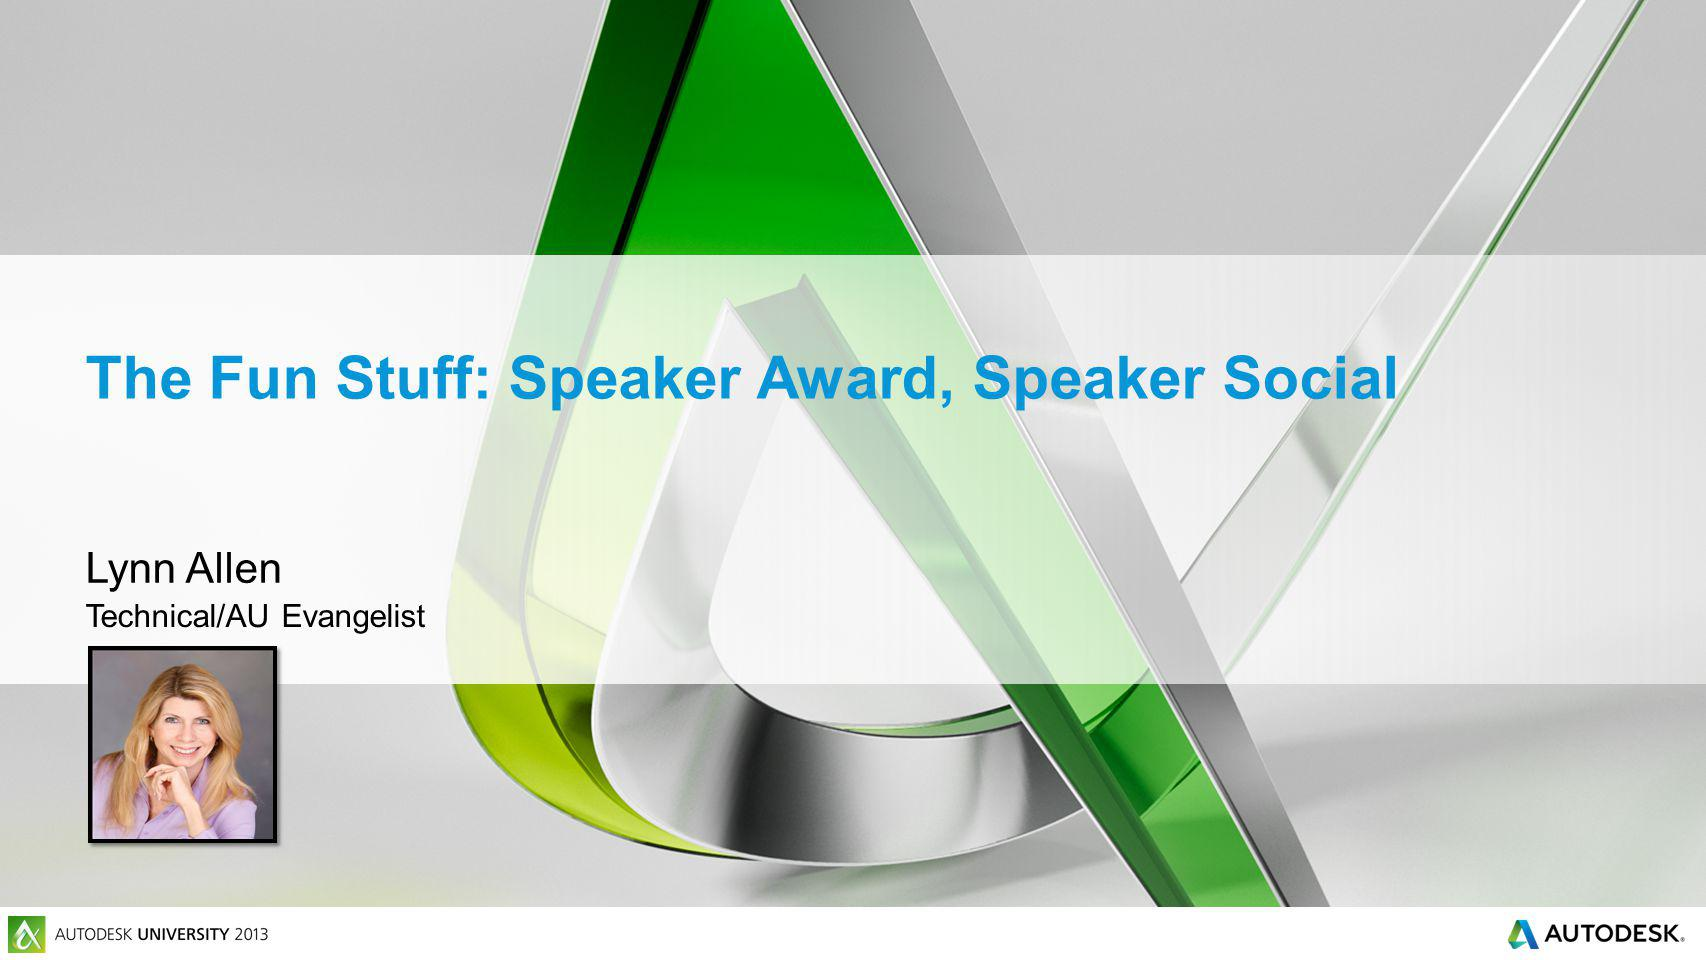 The Fun Stuff: Speaker Award, Speaker Social Lynn Allen Technical/AU Evangelist